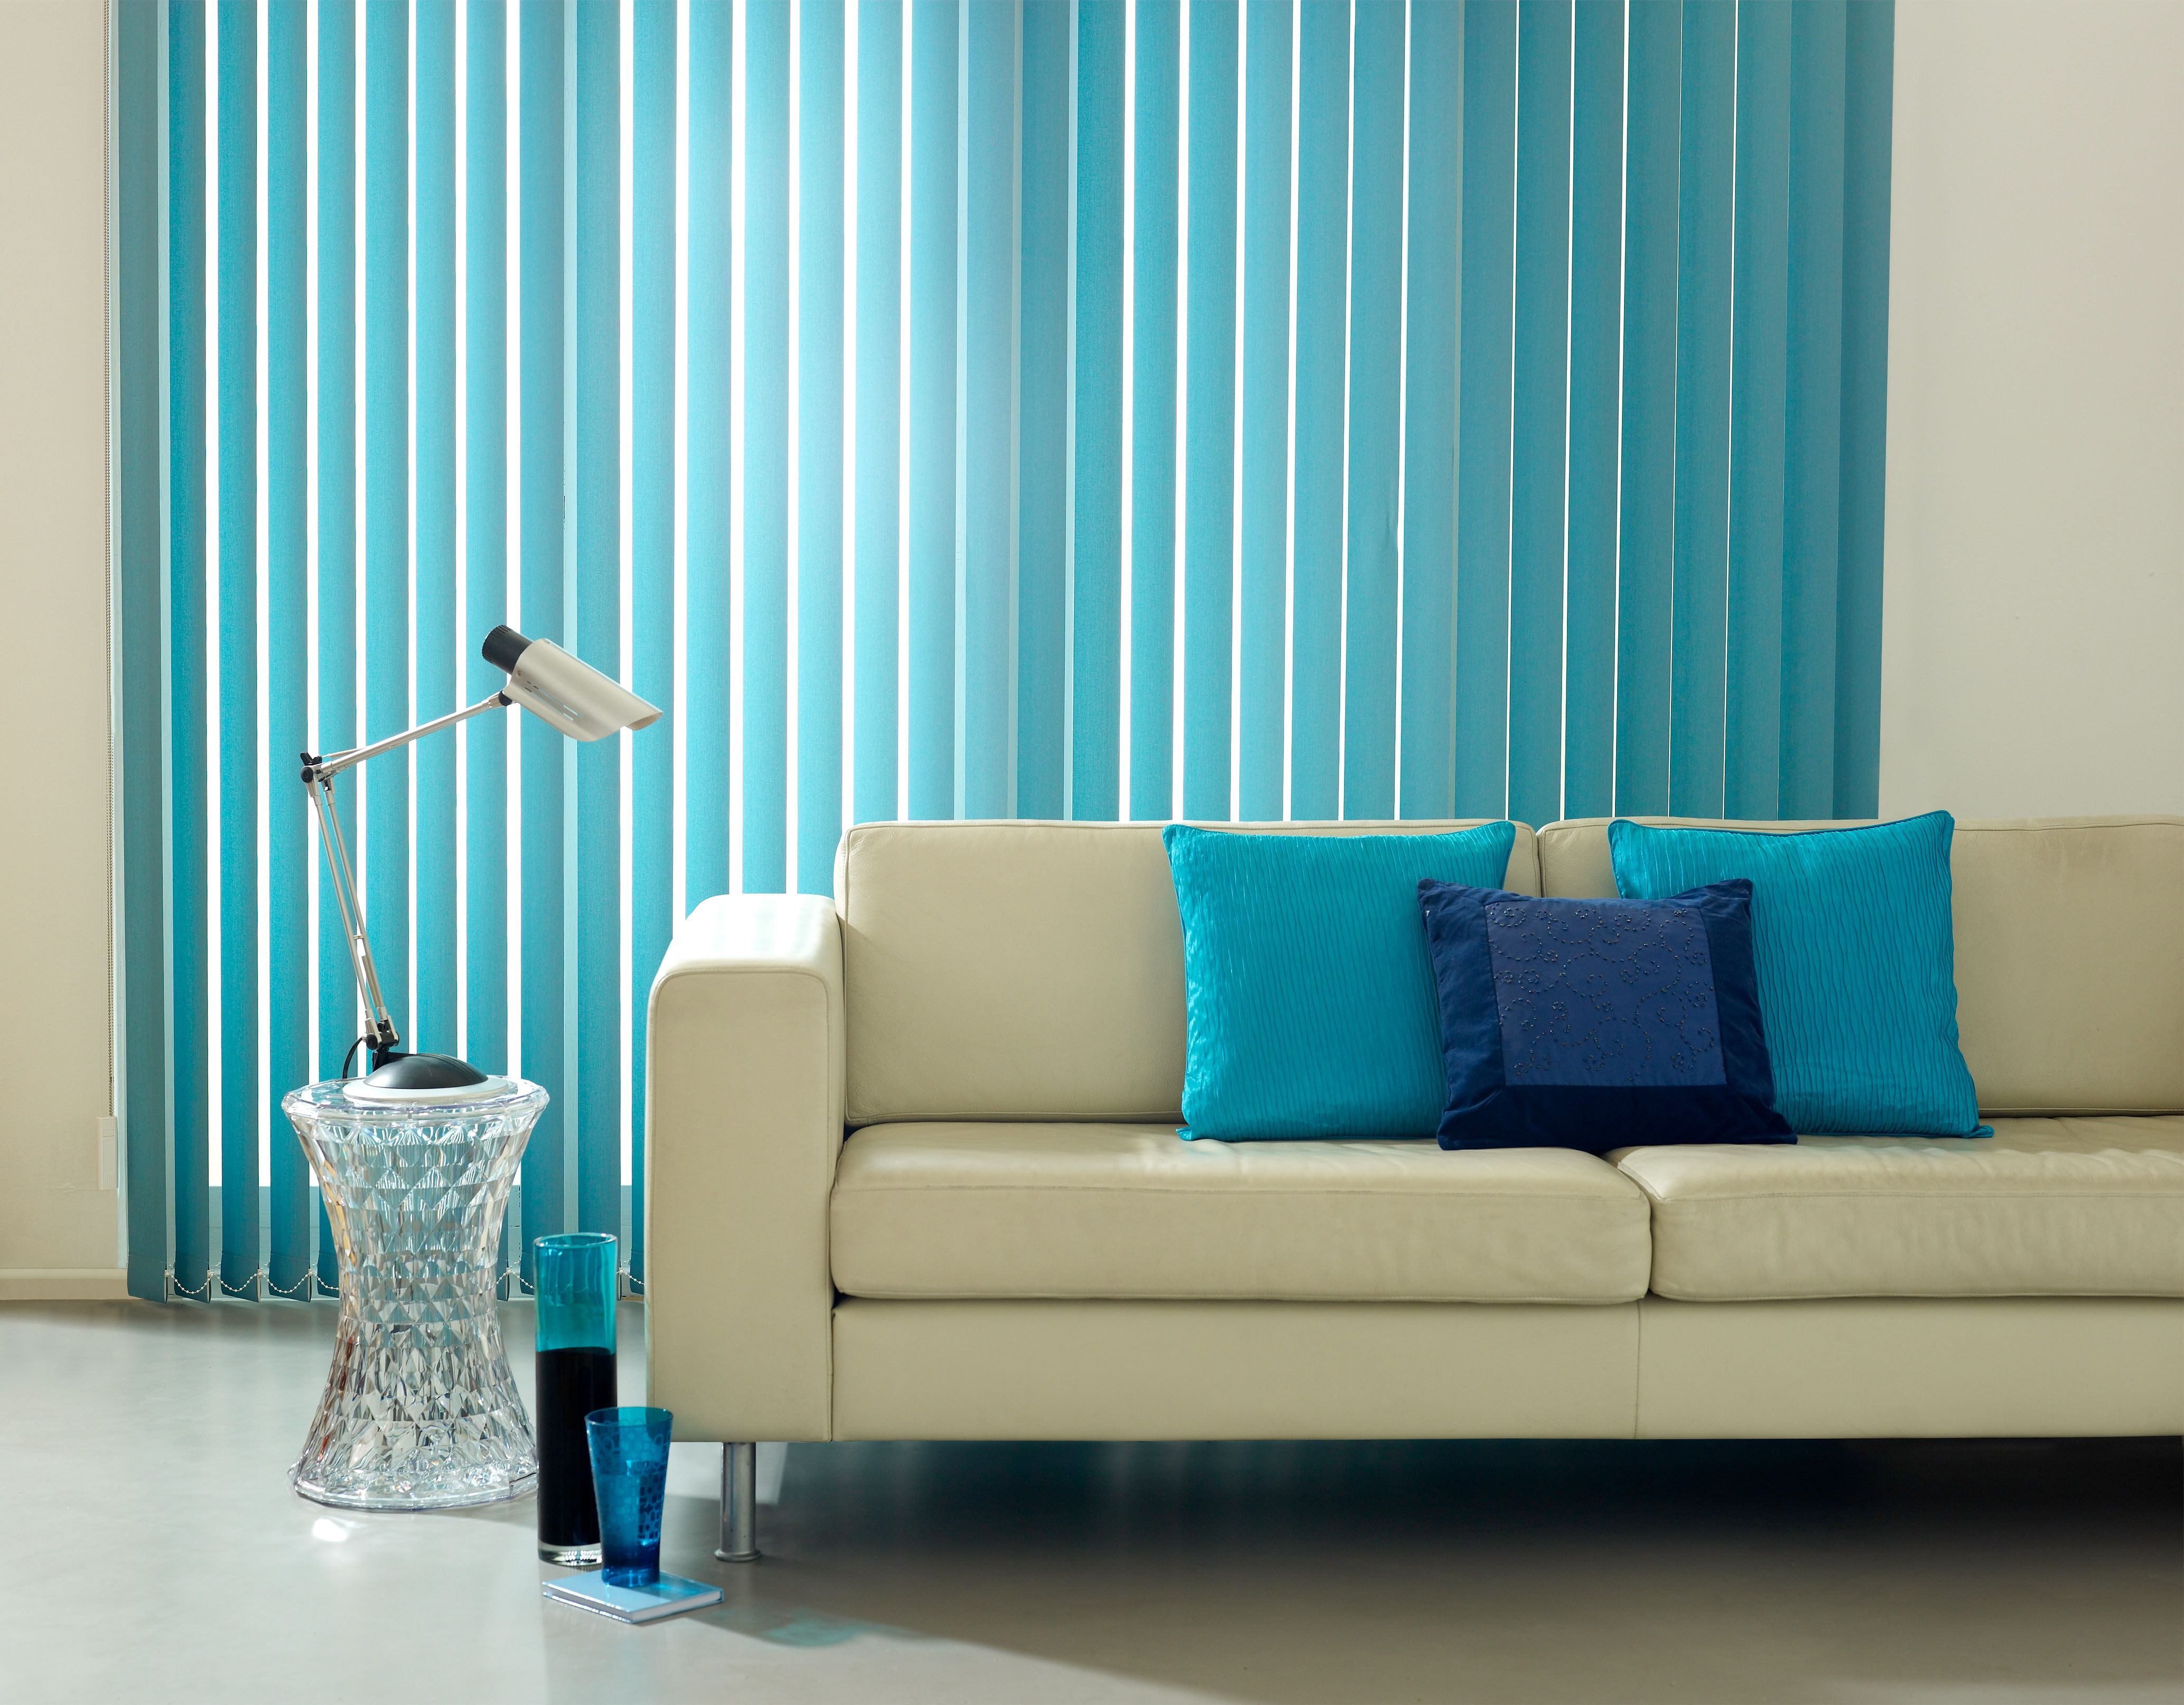 Keeping clean vertical blinds